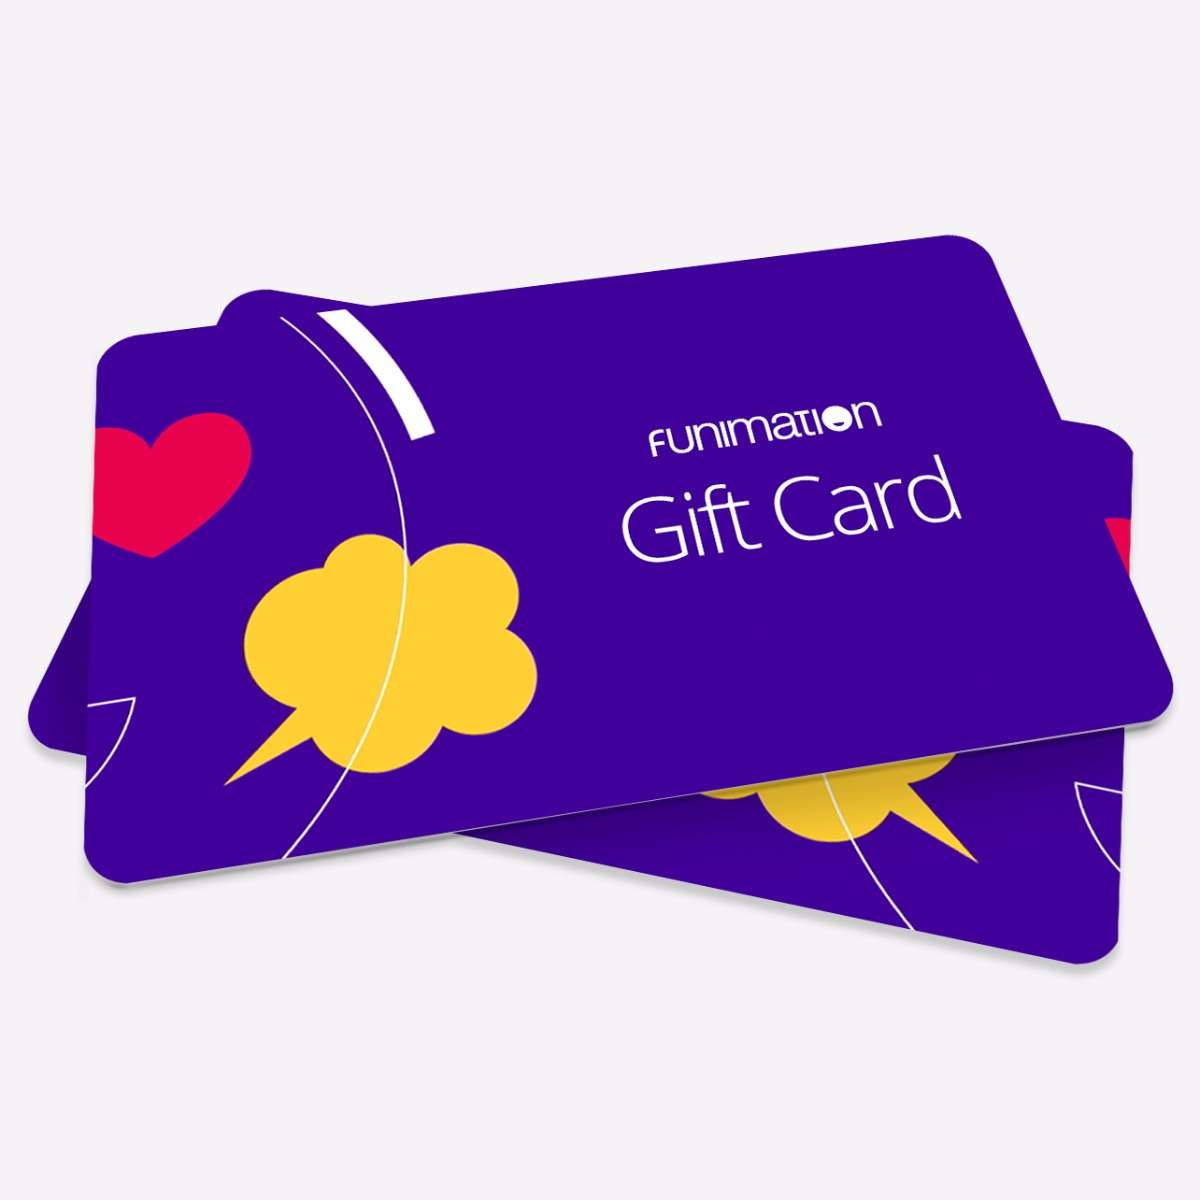 Funimation Gift Card Accessories